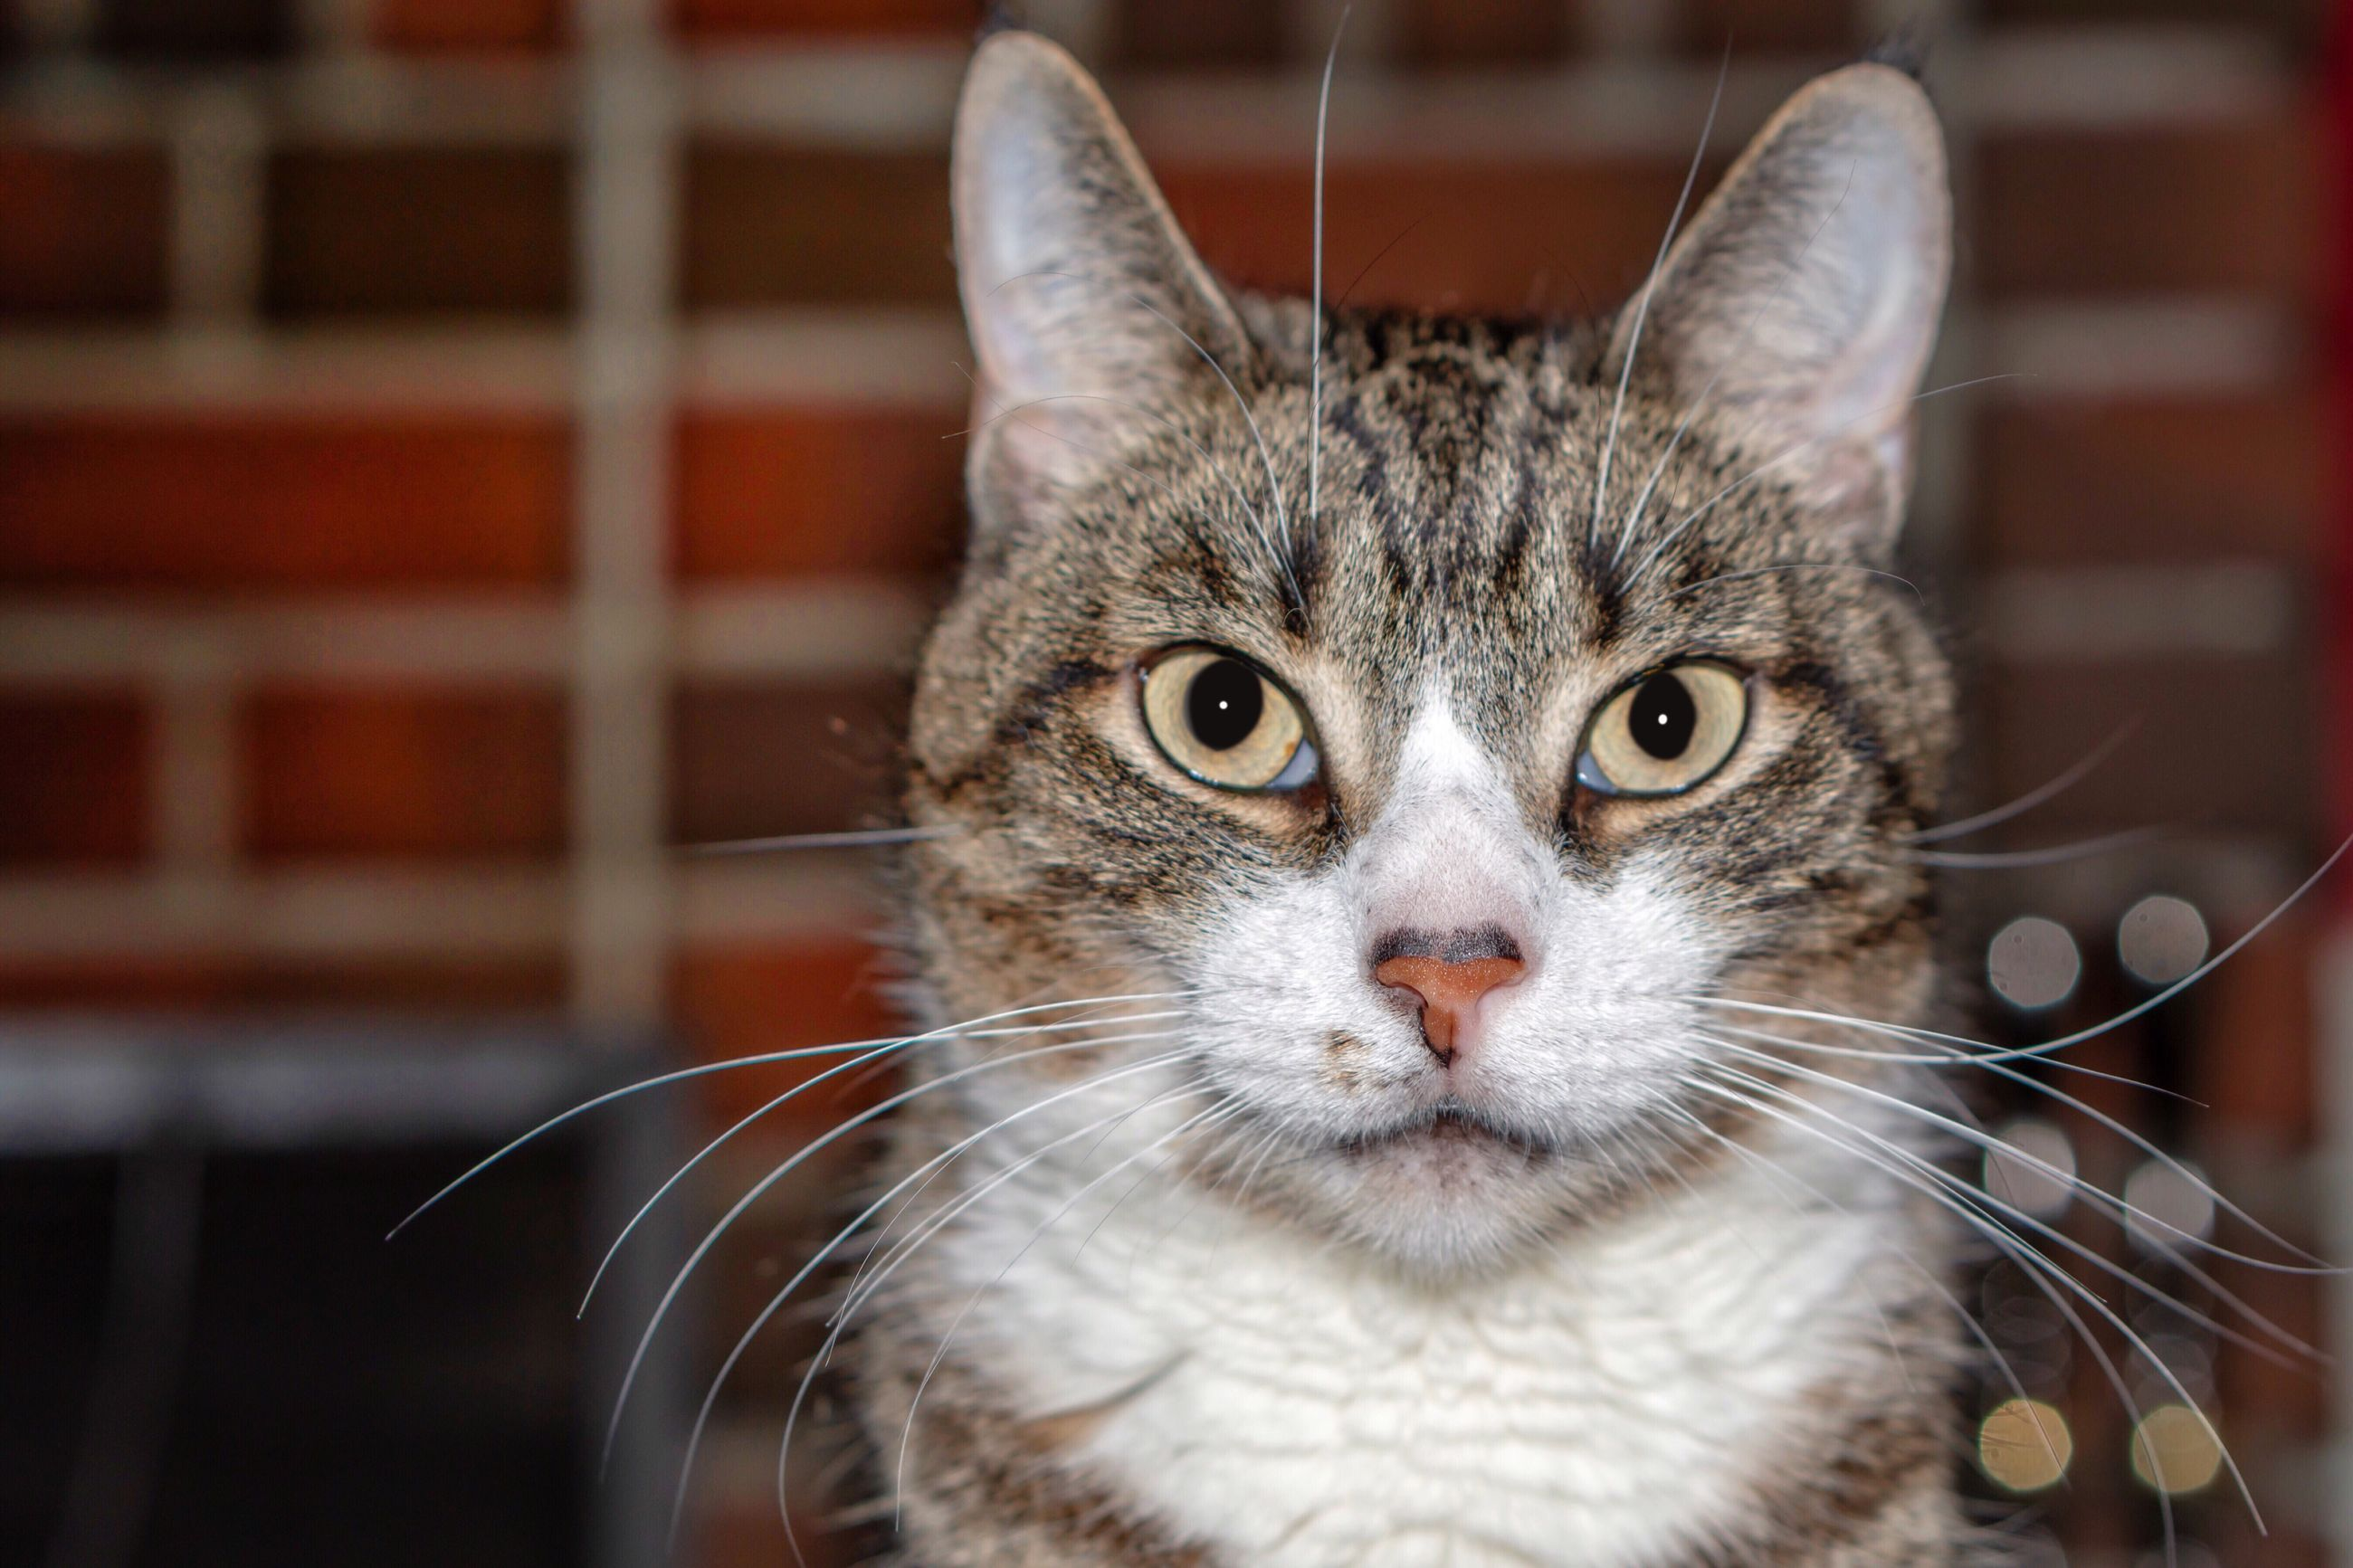 cat, one animal, domestic cat, mammal, pets, domestic, feline, domestic animals, whisker, vertebrate, portrait, looking at camera, close-up, focus on foreground, no people, animal body part, animal eye, yellow eyes, tabby, snout